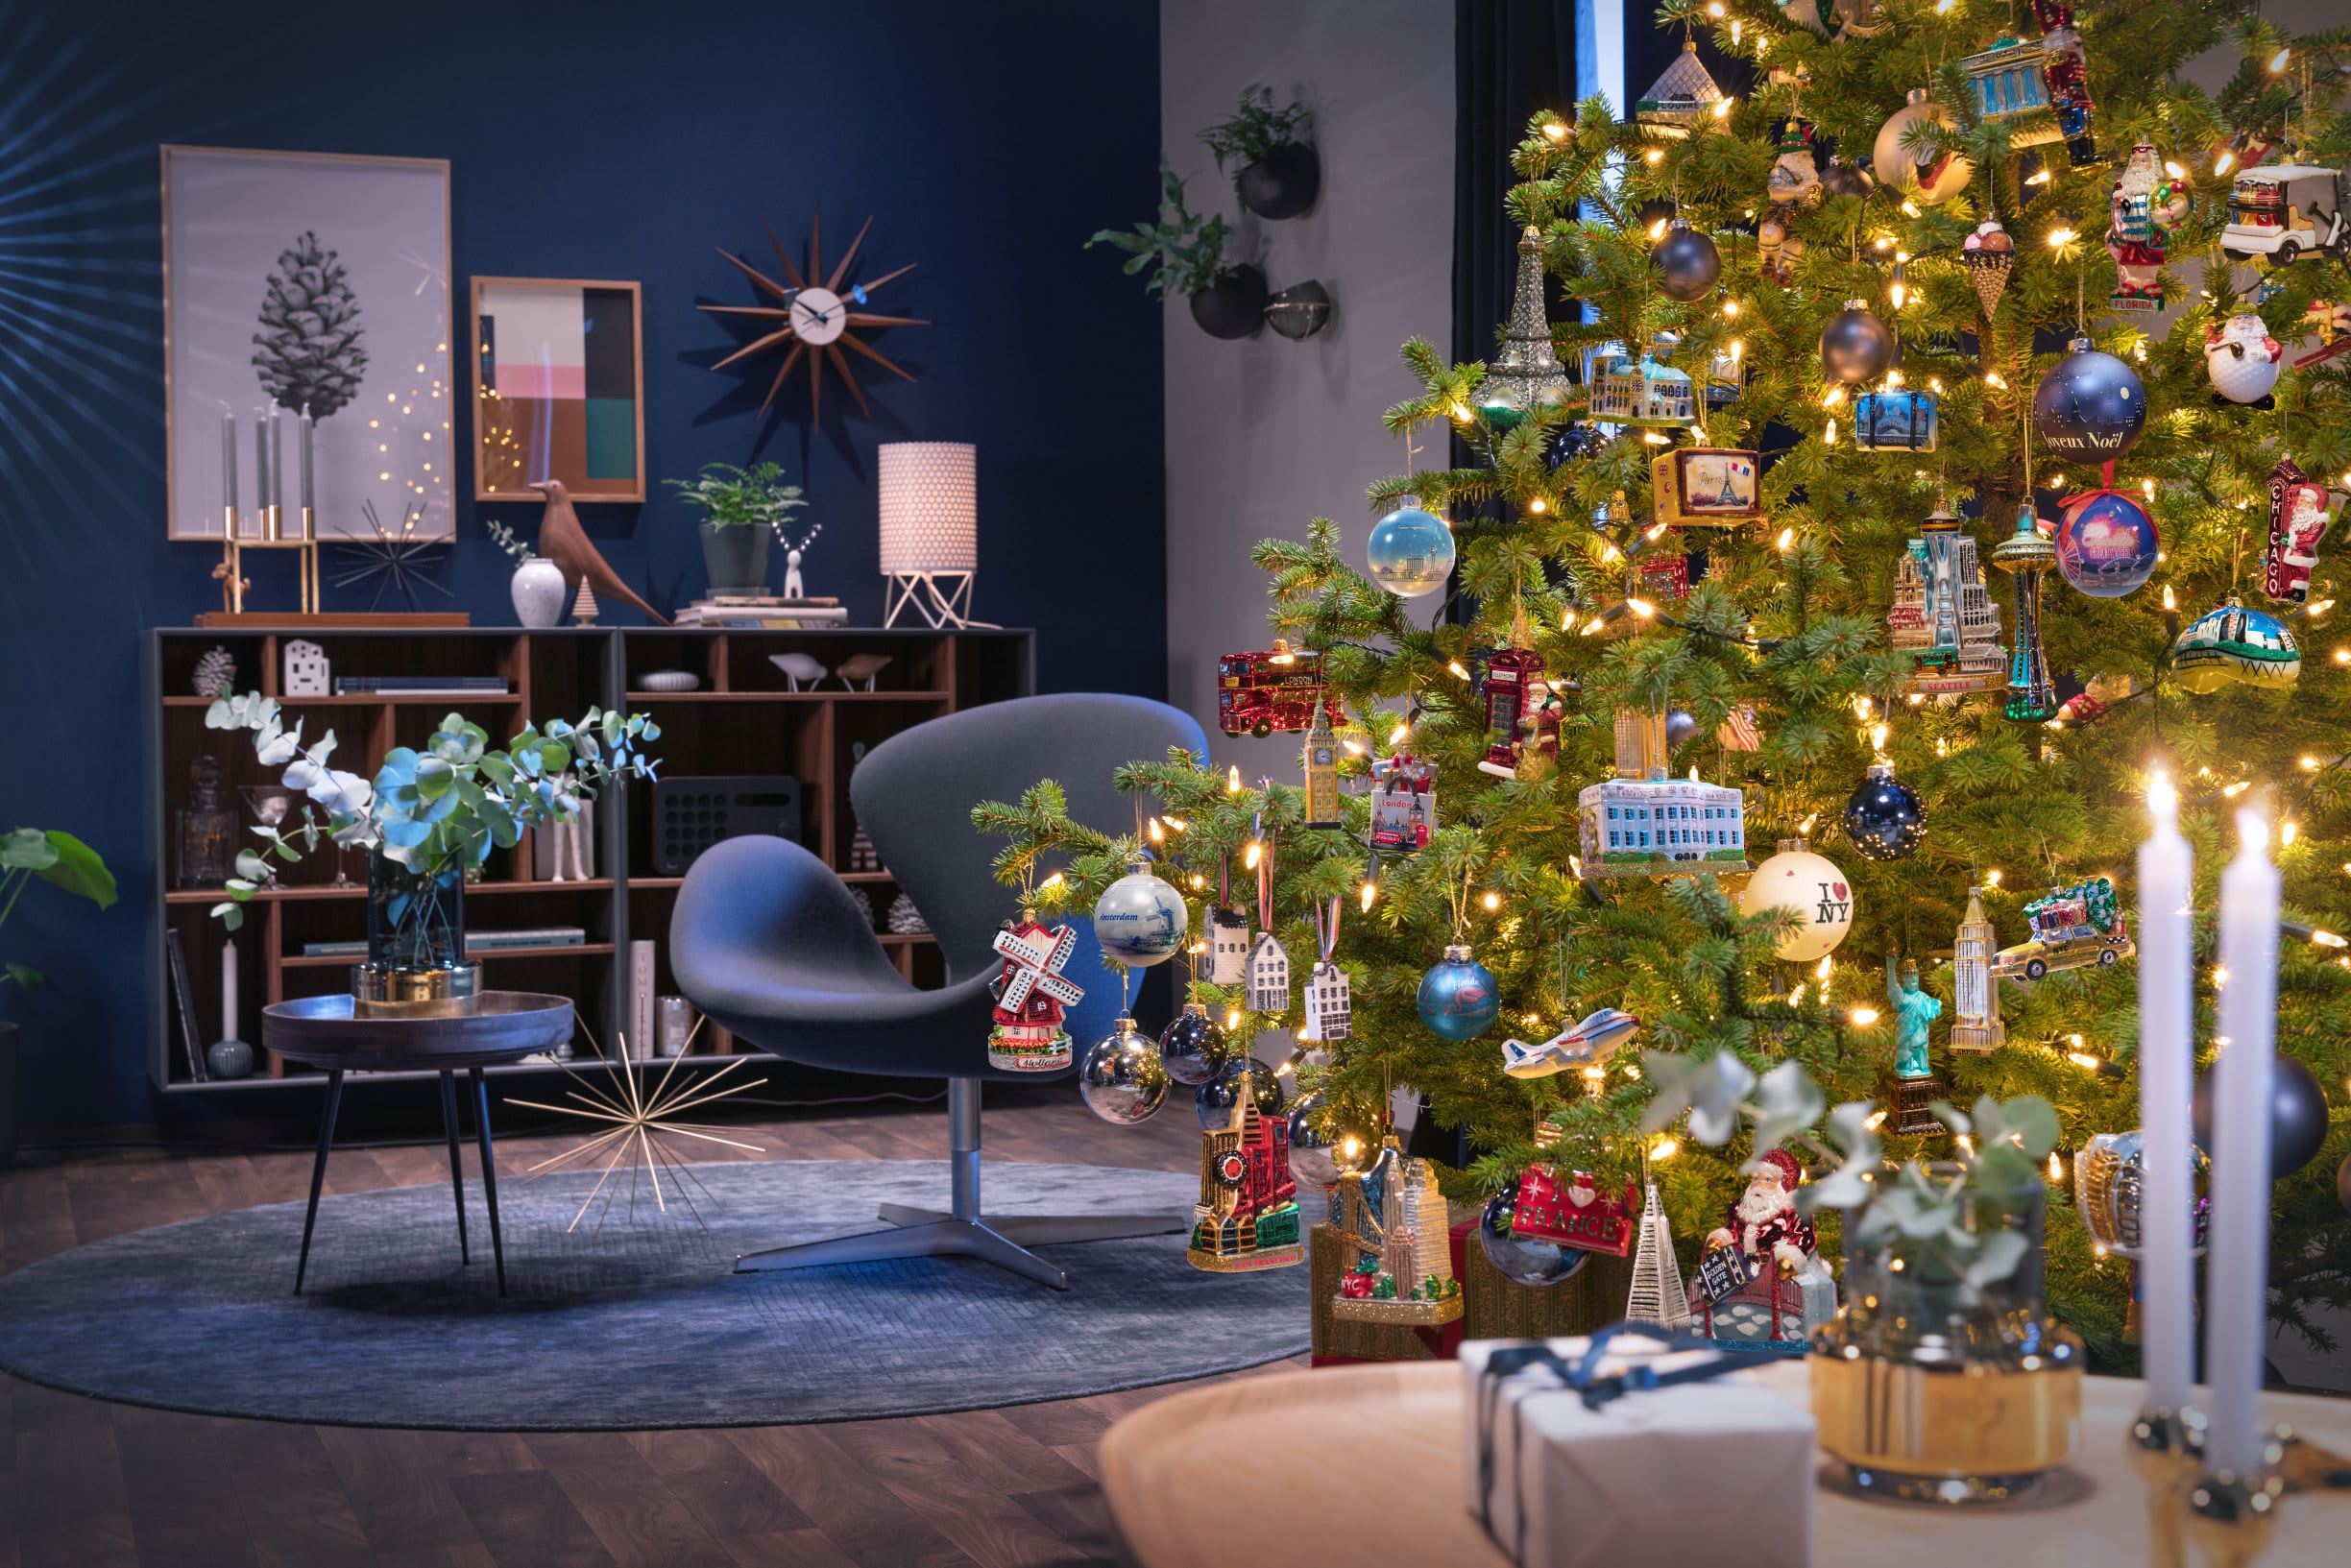 a cosy livingroom scene with designer Scandanavian decor and a large bright Christmas tree